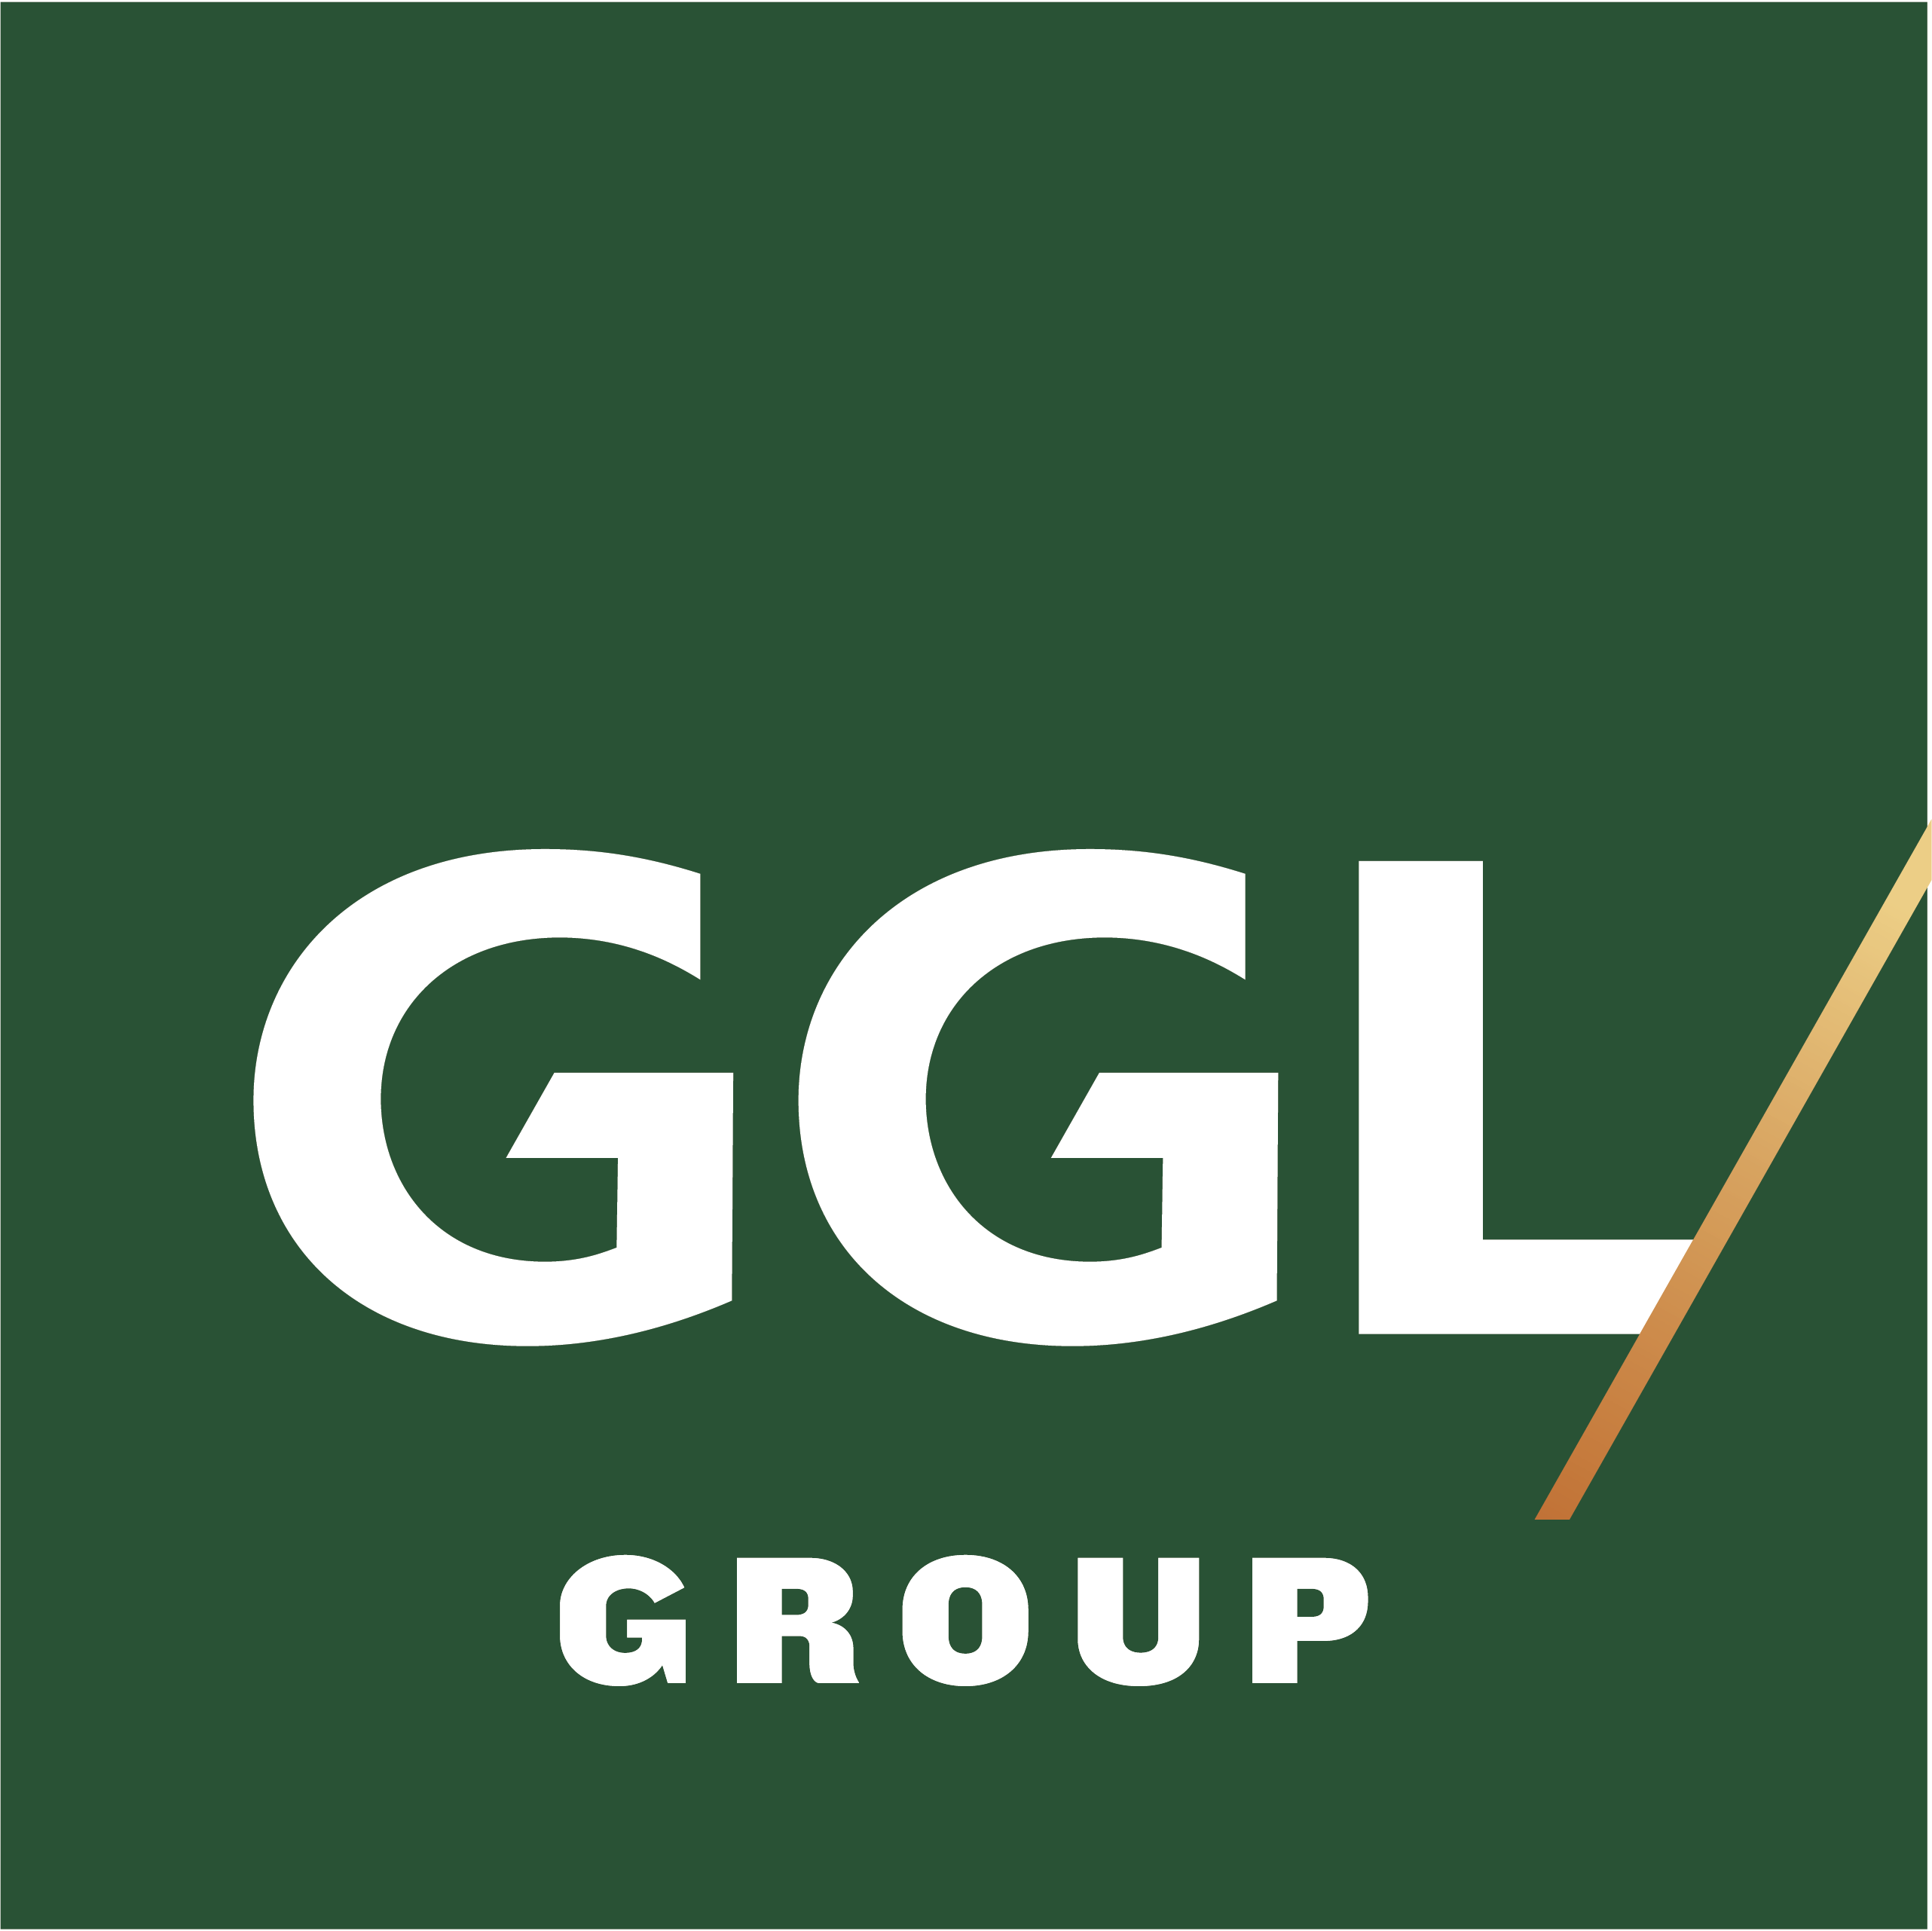 The GGL Group